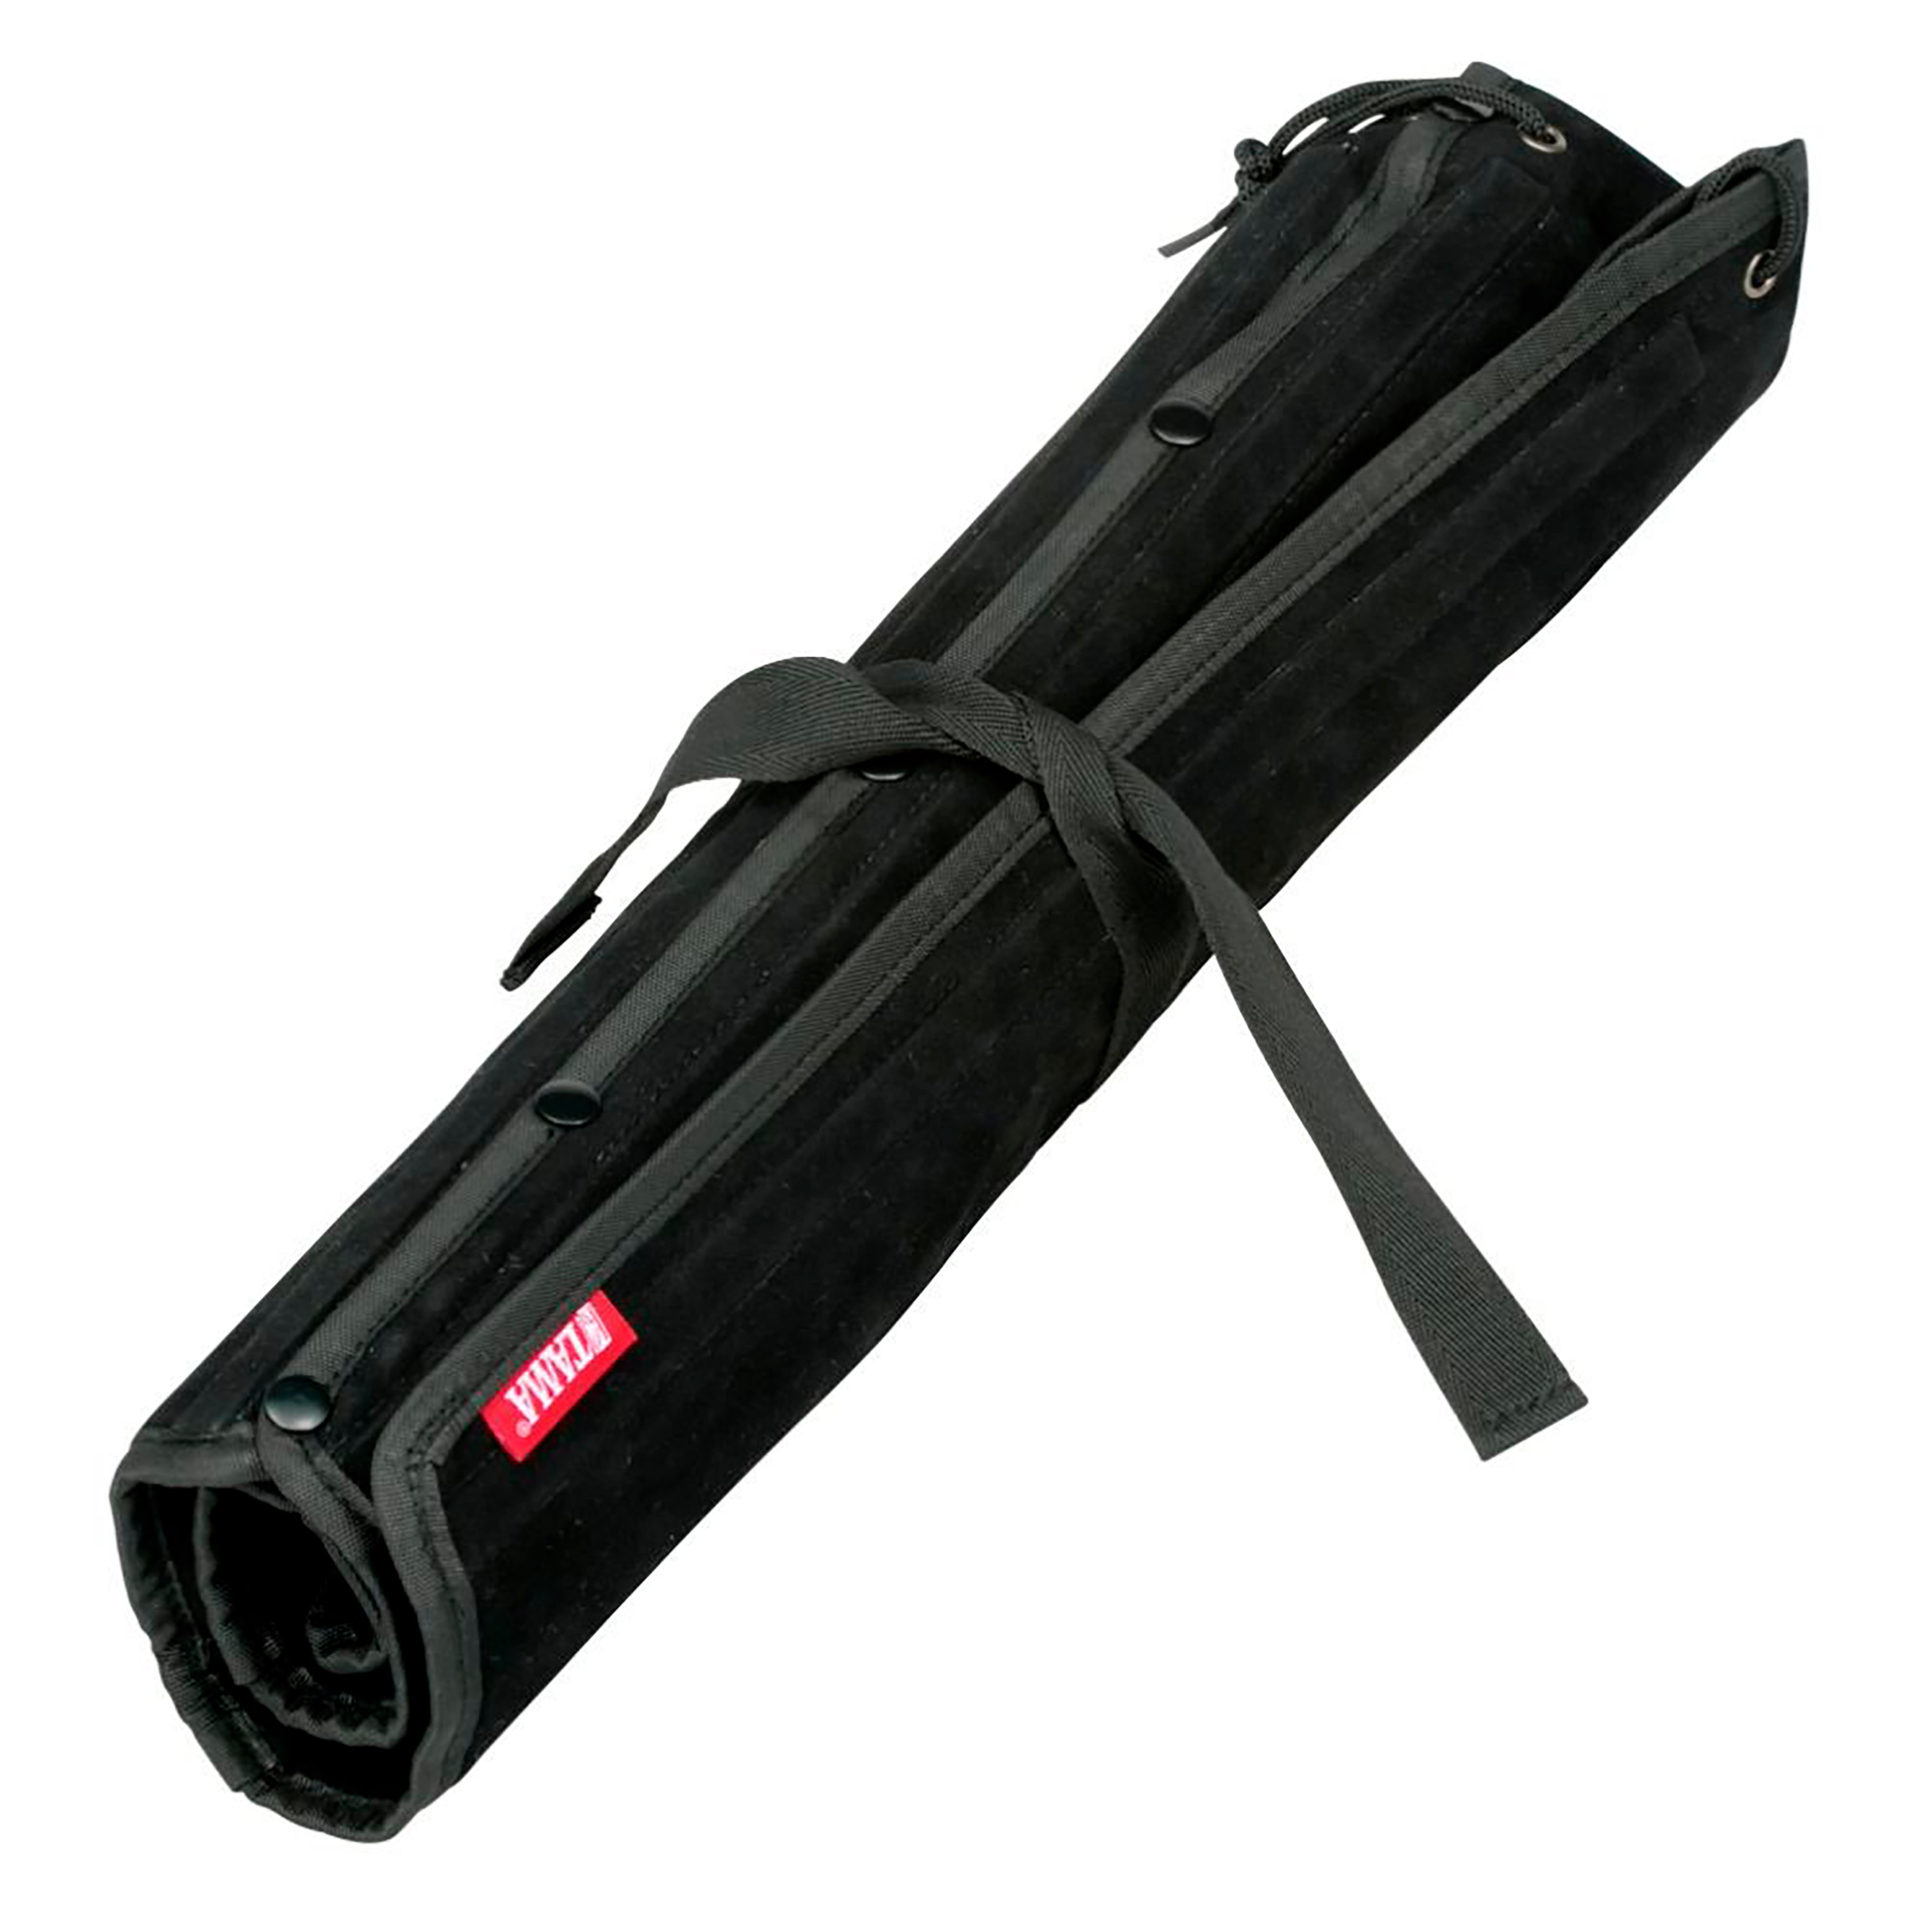 MBR02 Roll Up Mallet Bag